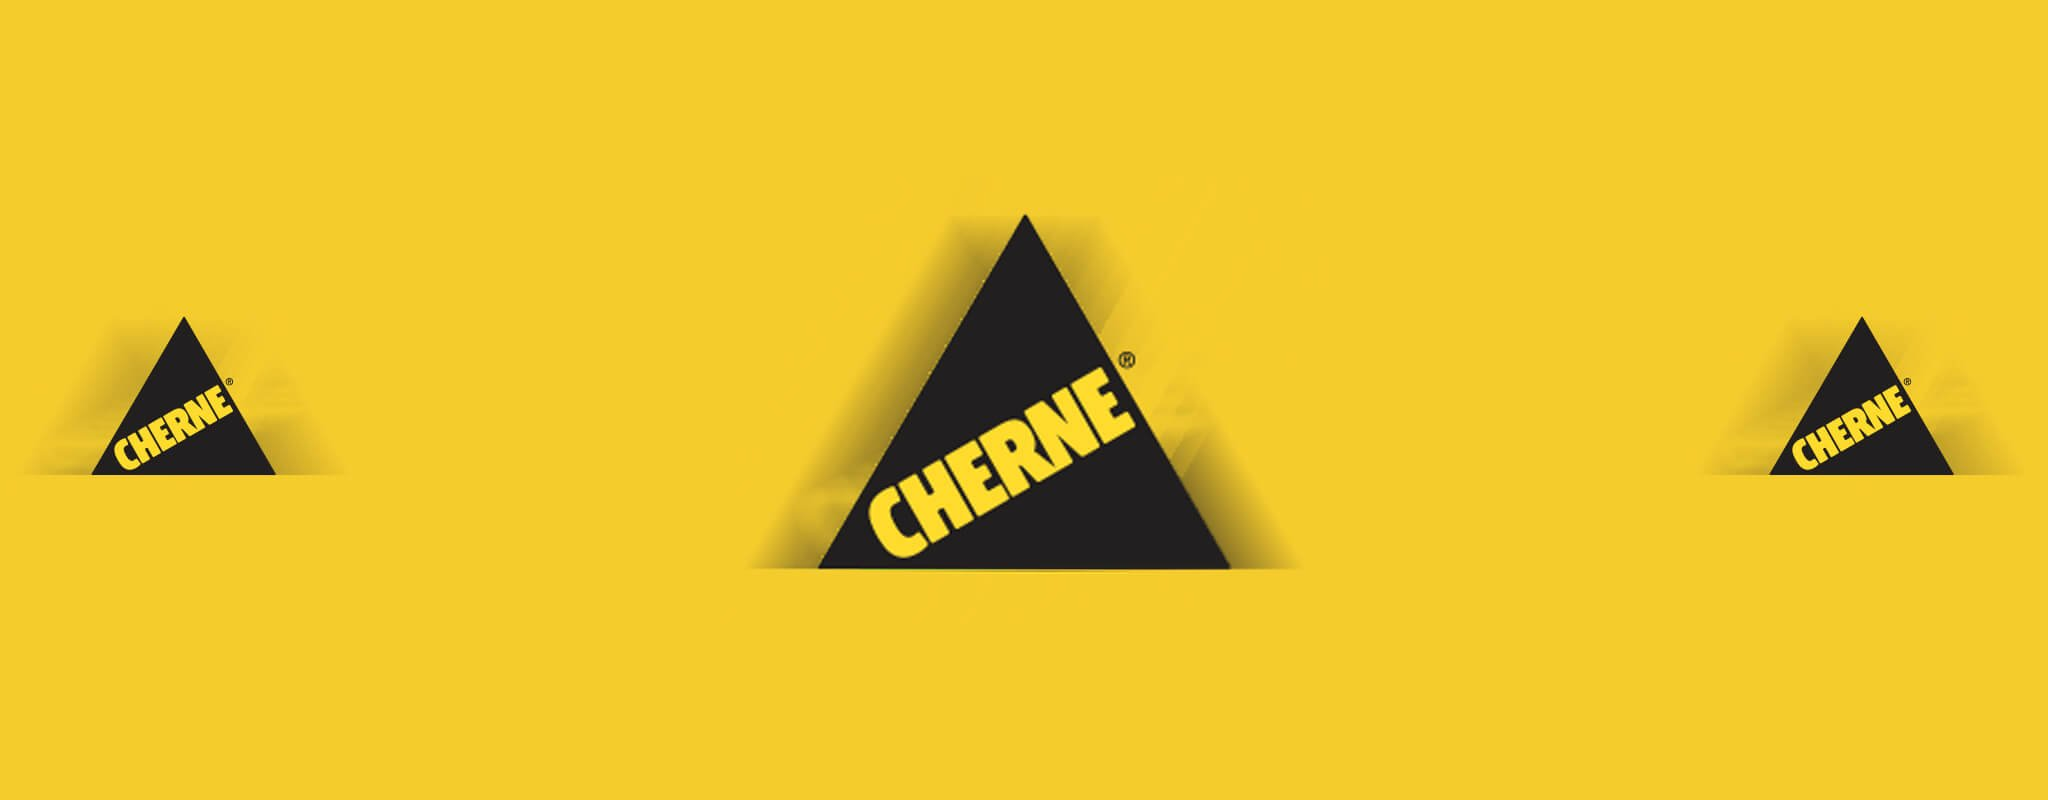 Primeline Products Cherne Sewer Rehabilitation